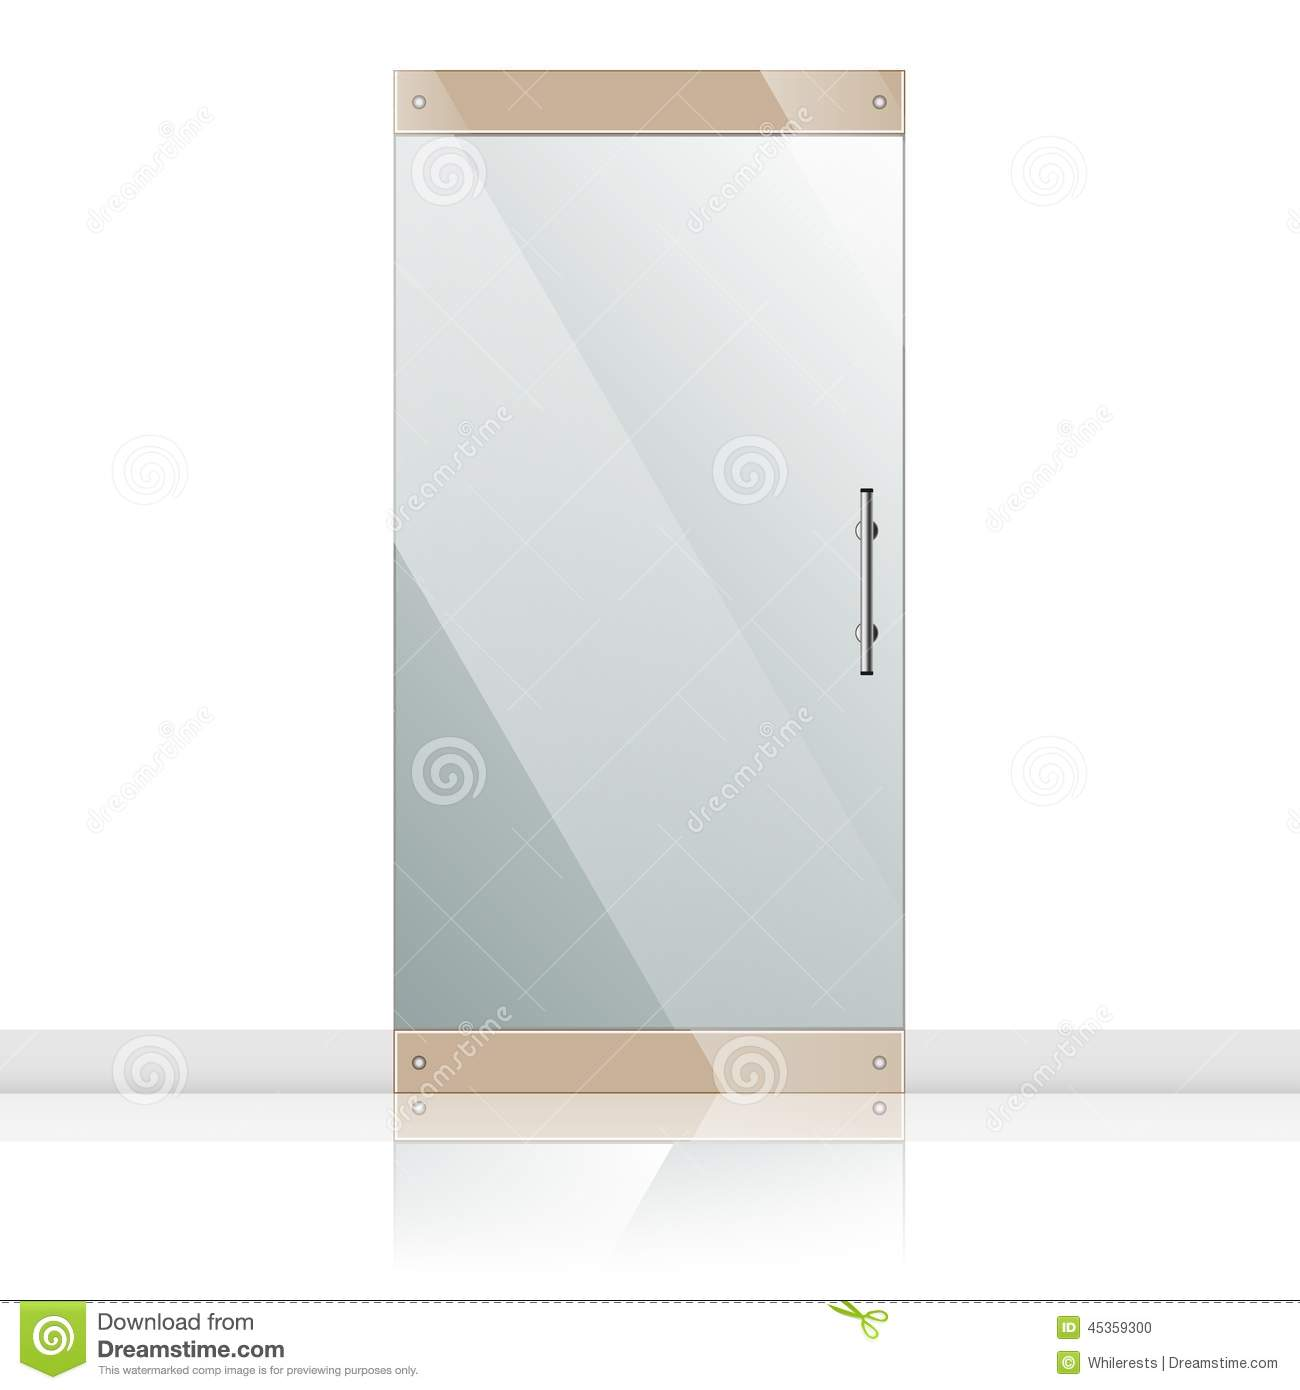 Merveilleux Glass Door With Chrome Silver Handles Set